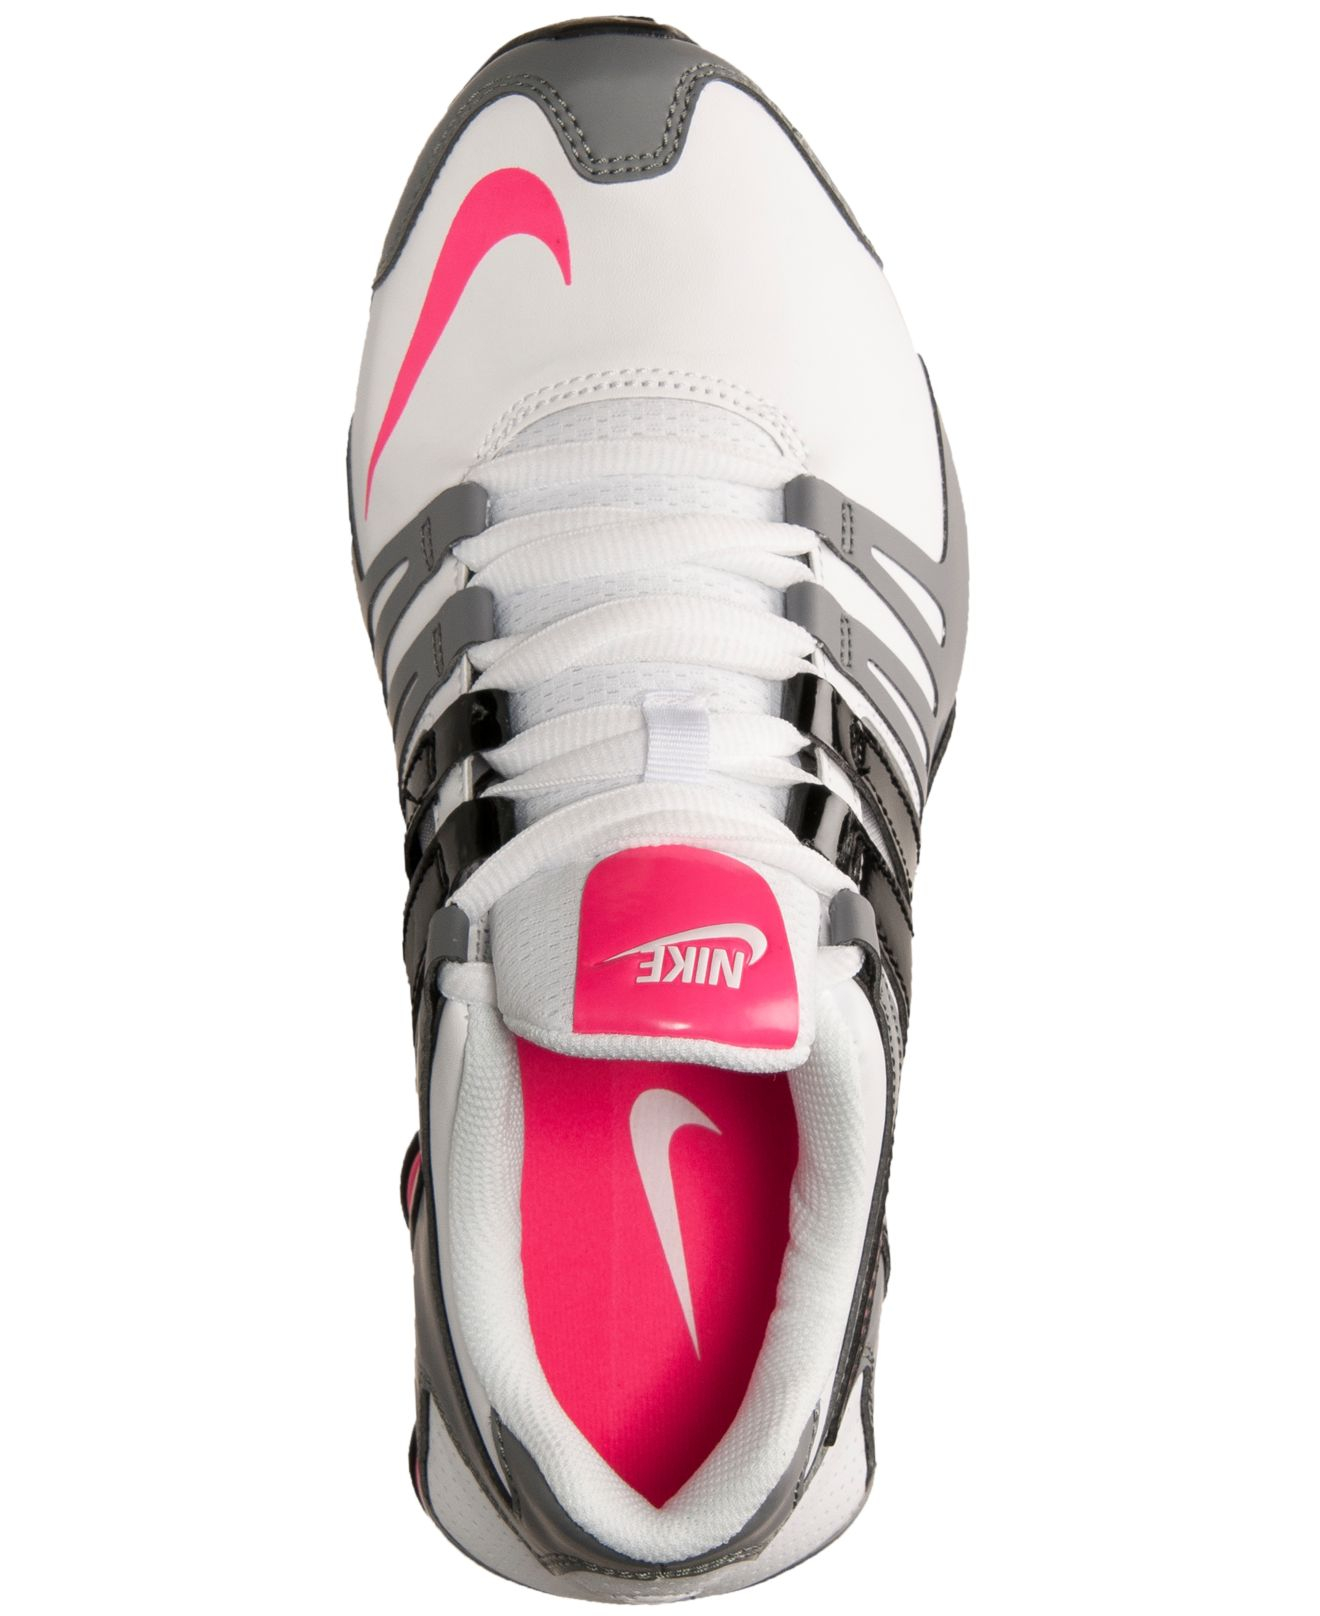 Lyst - Nike Women s Shox Current Running Sneakers From Finish Line ... 174576bf8